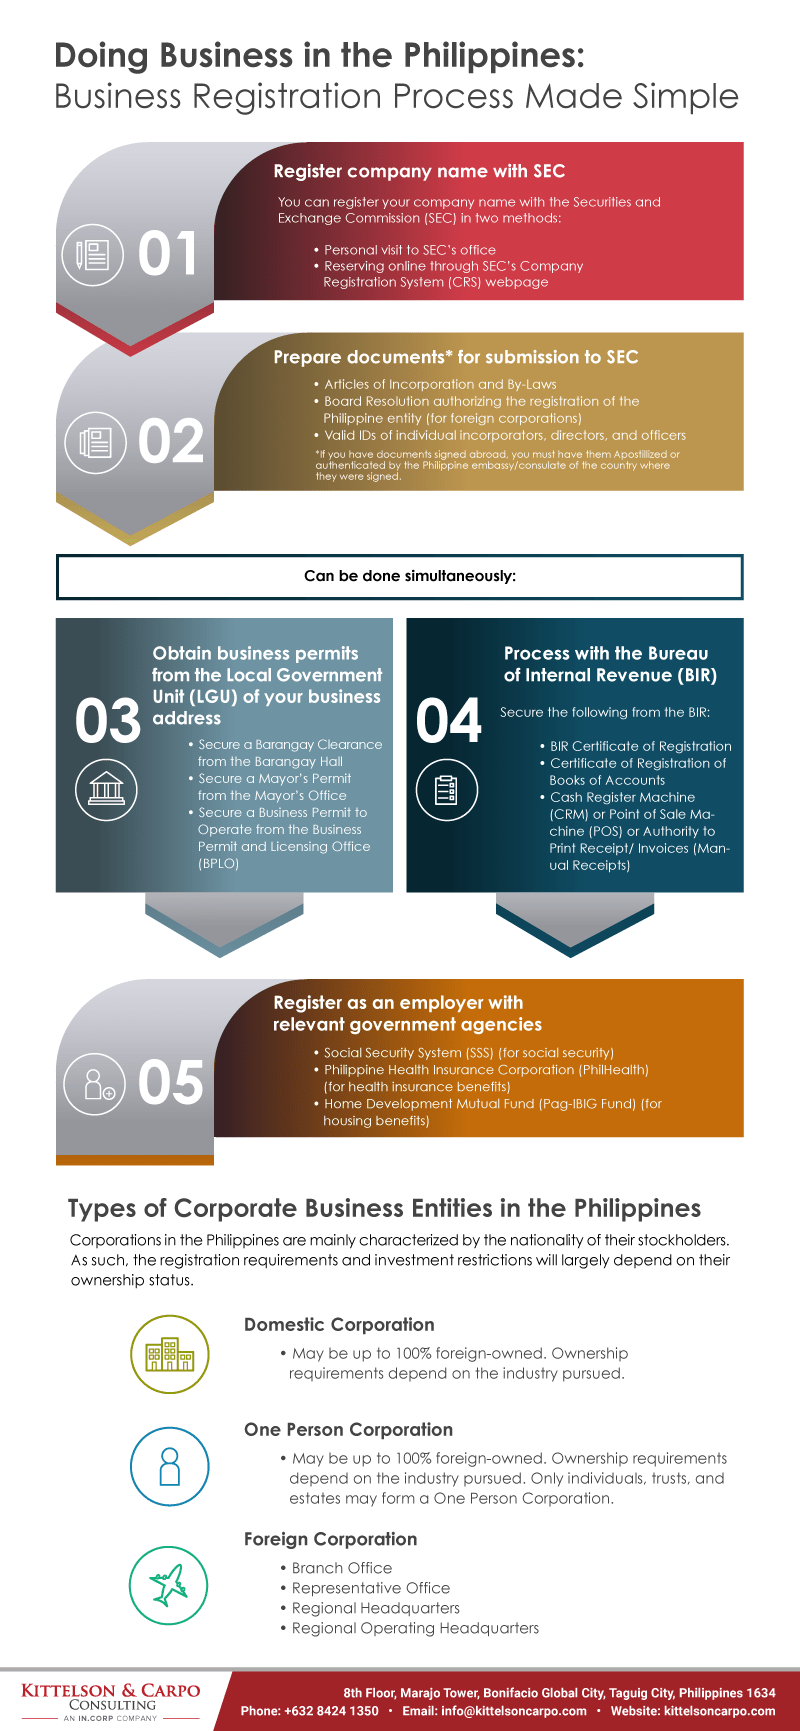 Doing Business in the Philippines - Business Registration Process Made Easy